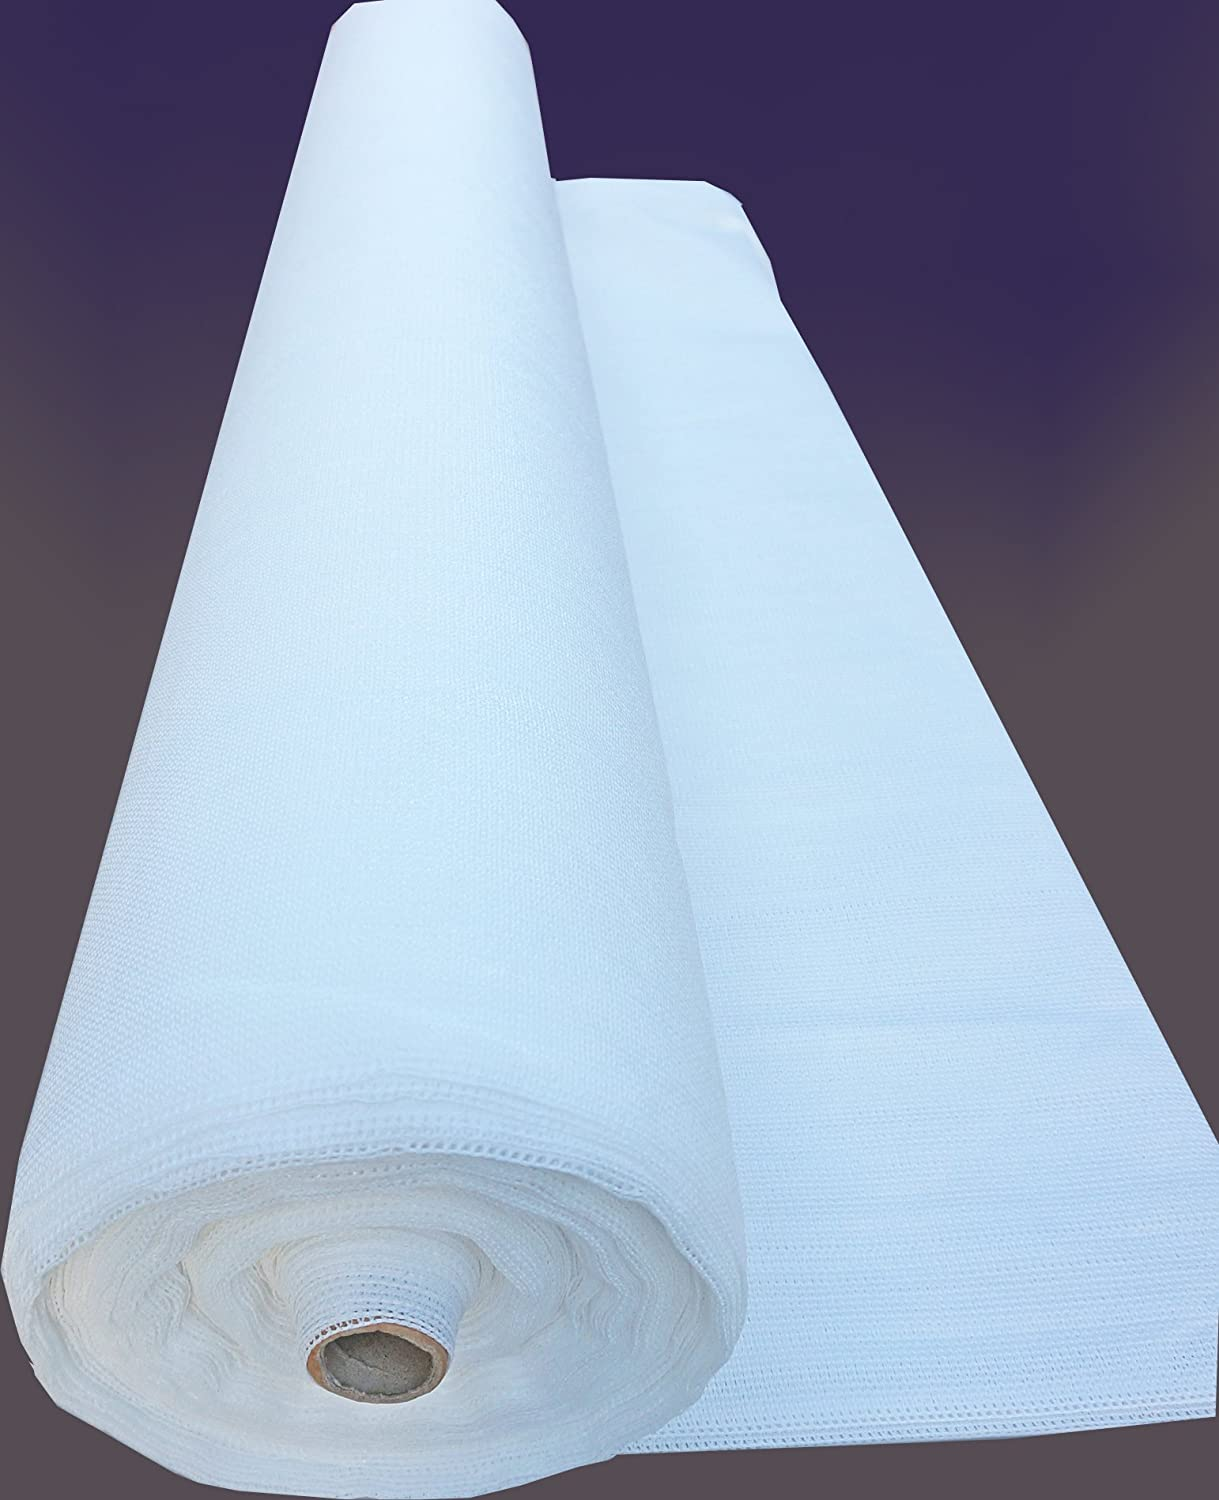 SHANS 90 UV Resistant Fabric Shade Cloth Pure White 20 by 50 ft with Clips Free